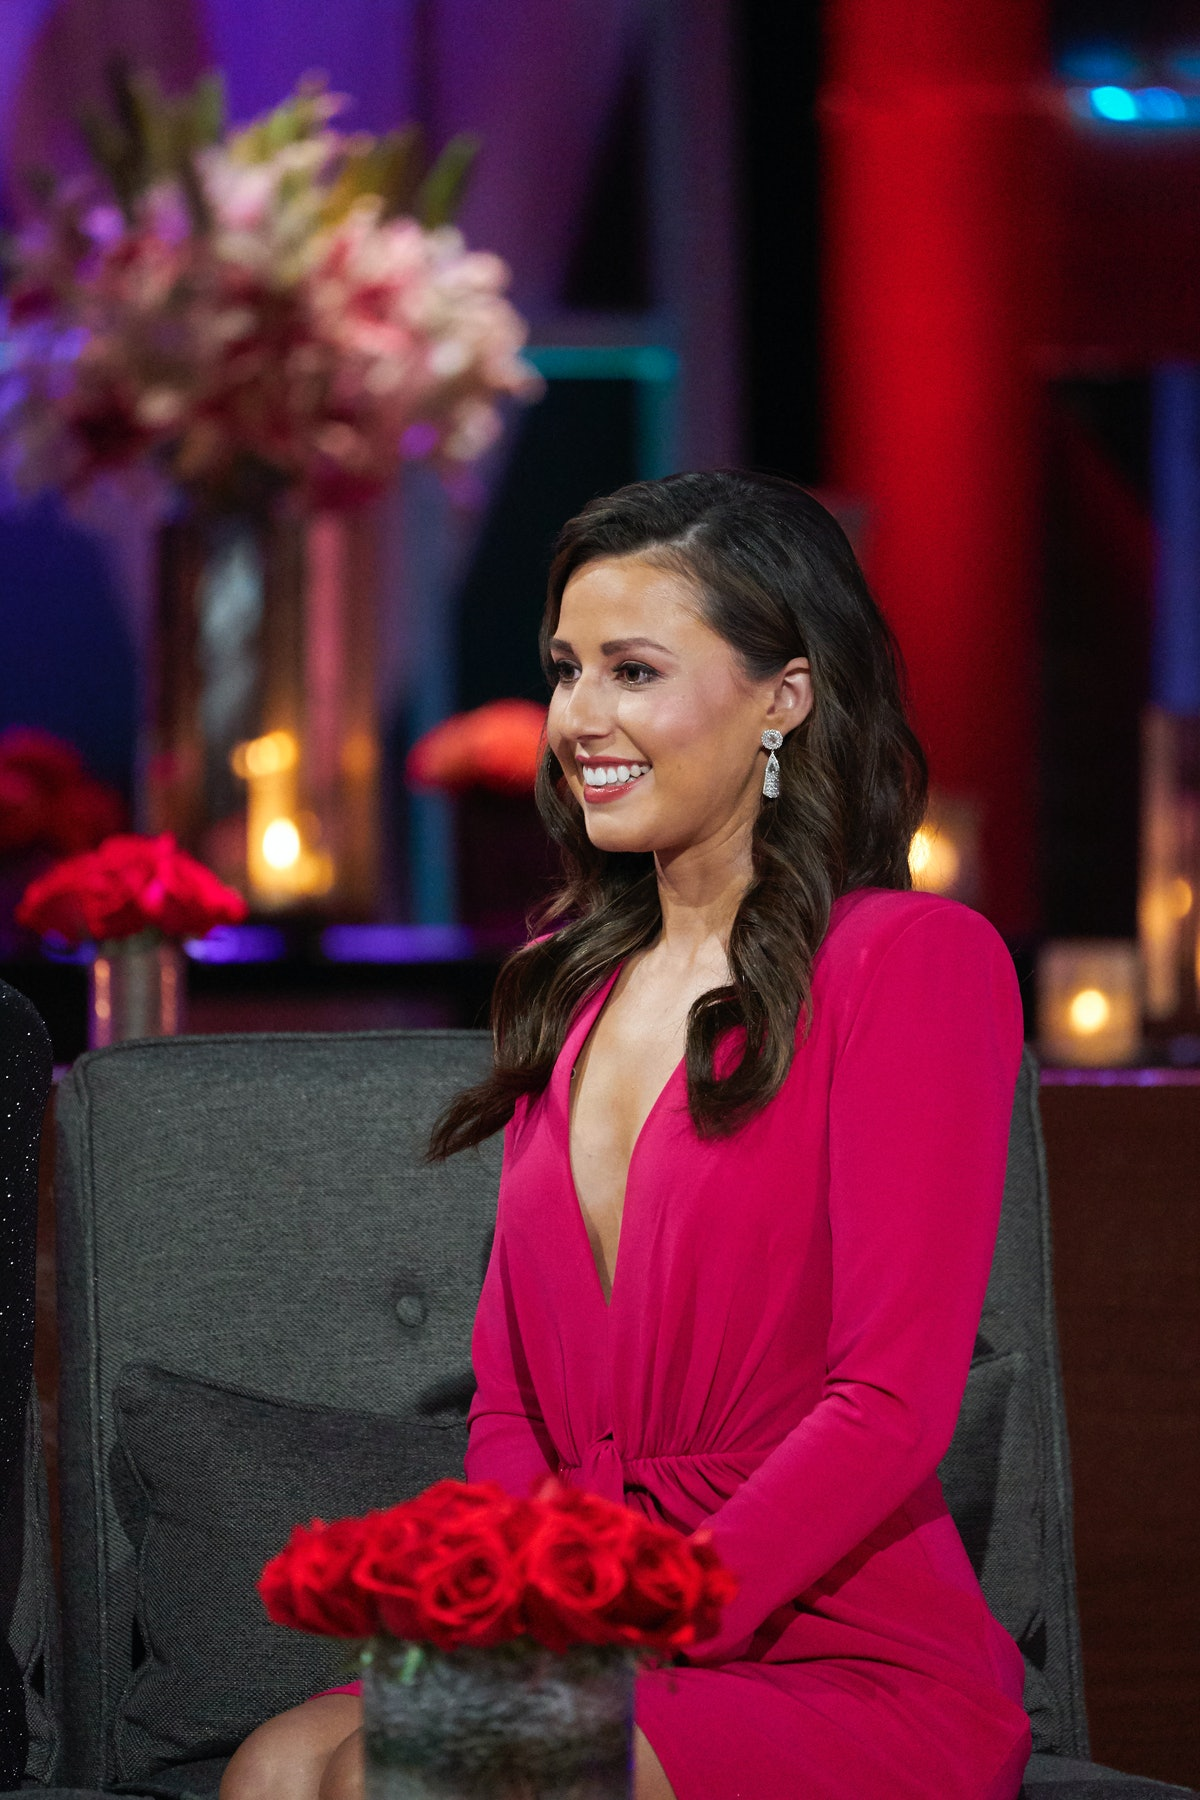 """Katie Thurston at The Bachelor's """"After the Final Rose"""" special."""